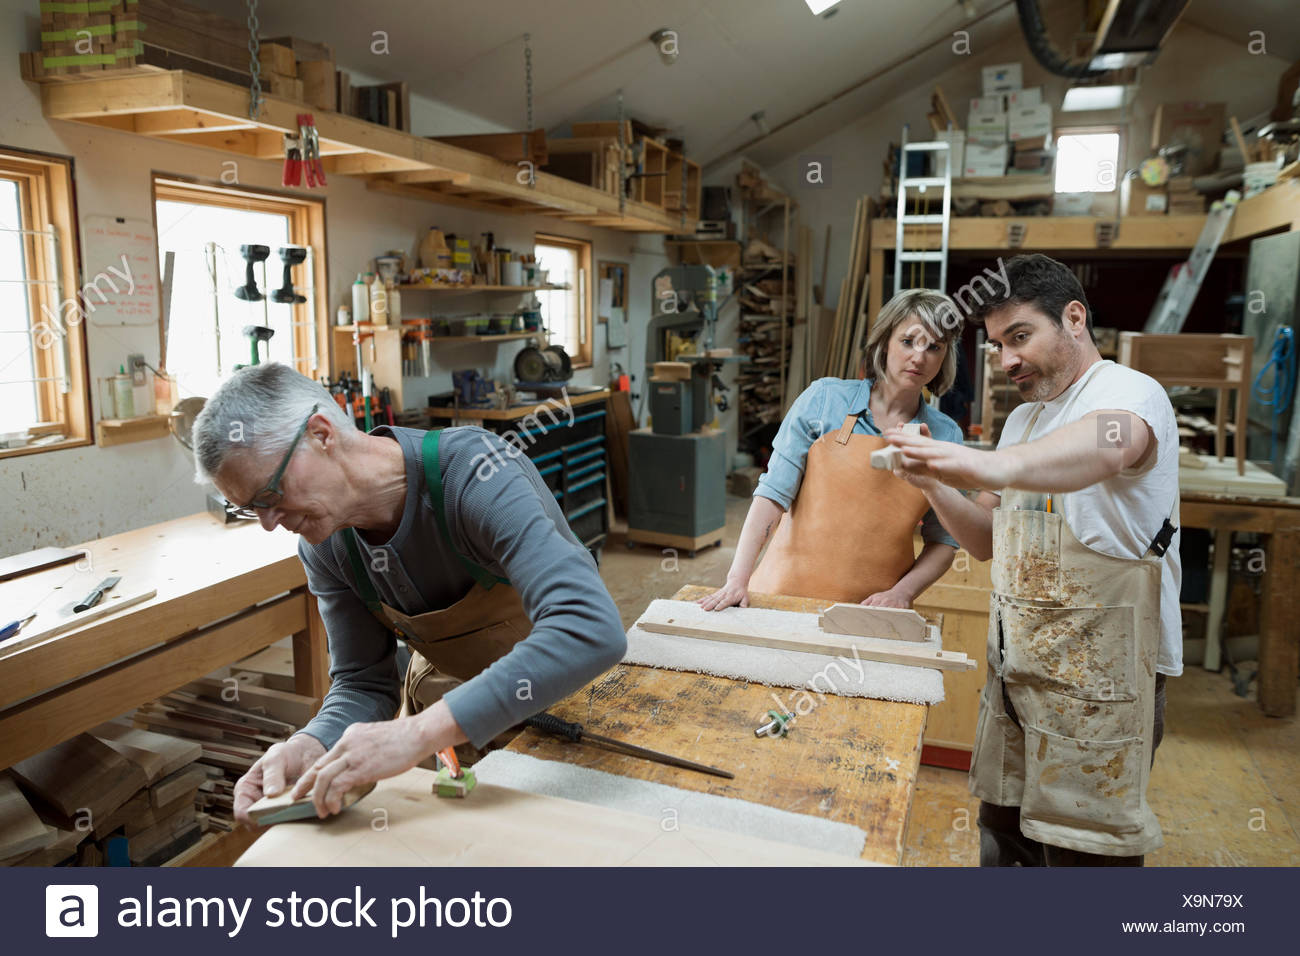 Carpenters working in workshop - Stock Image